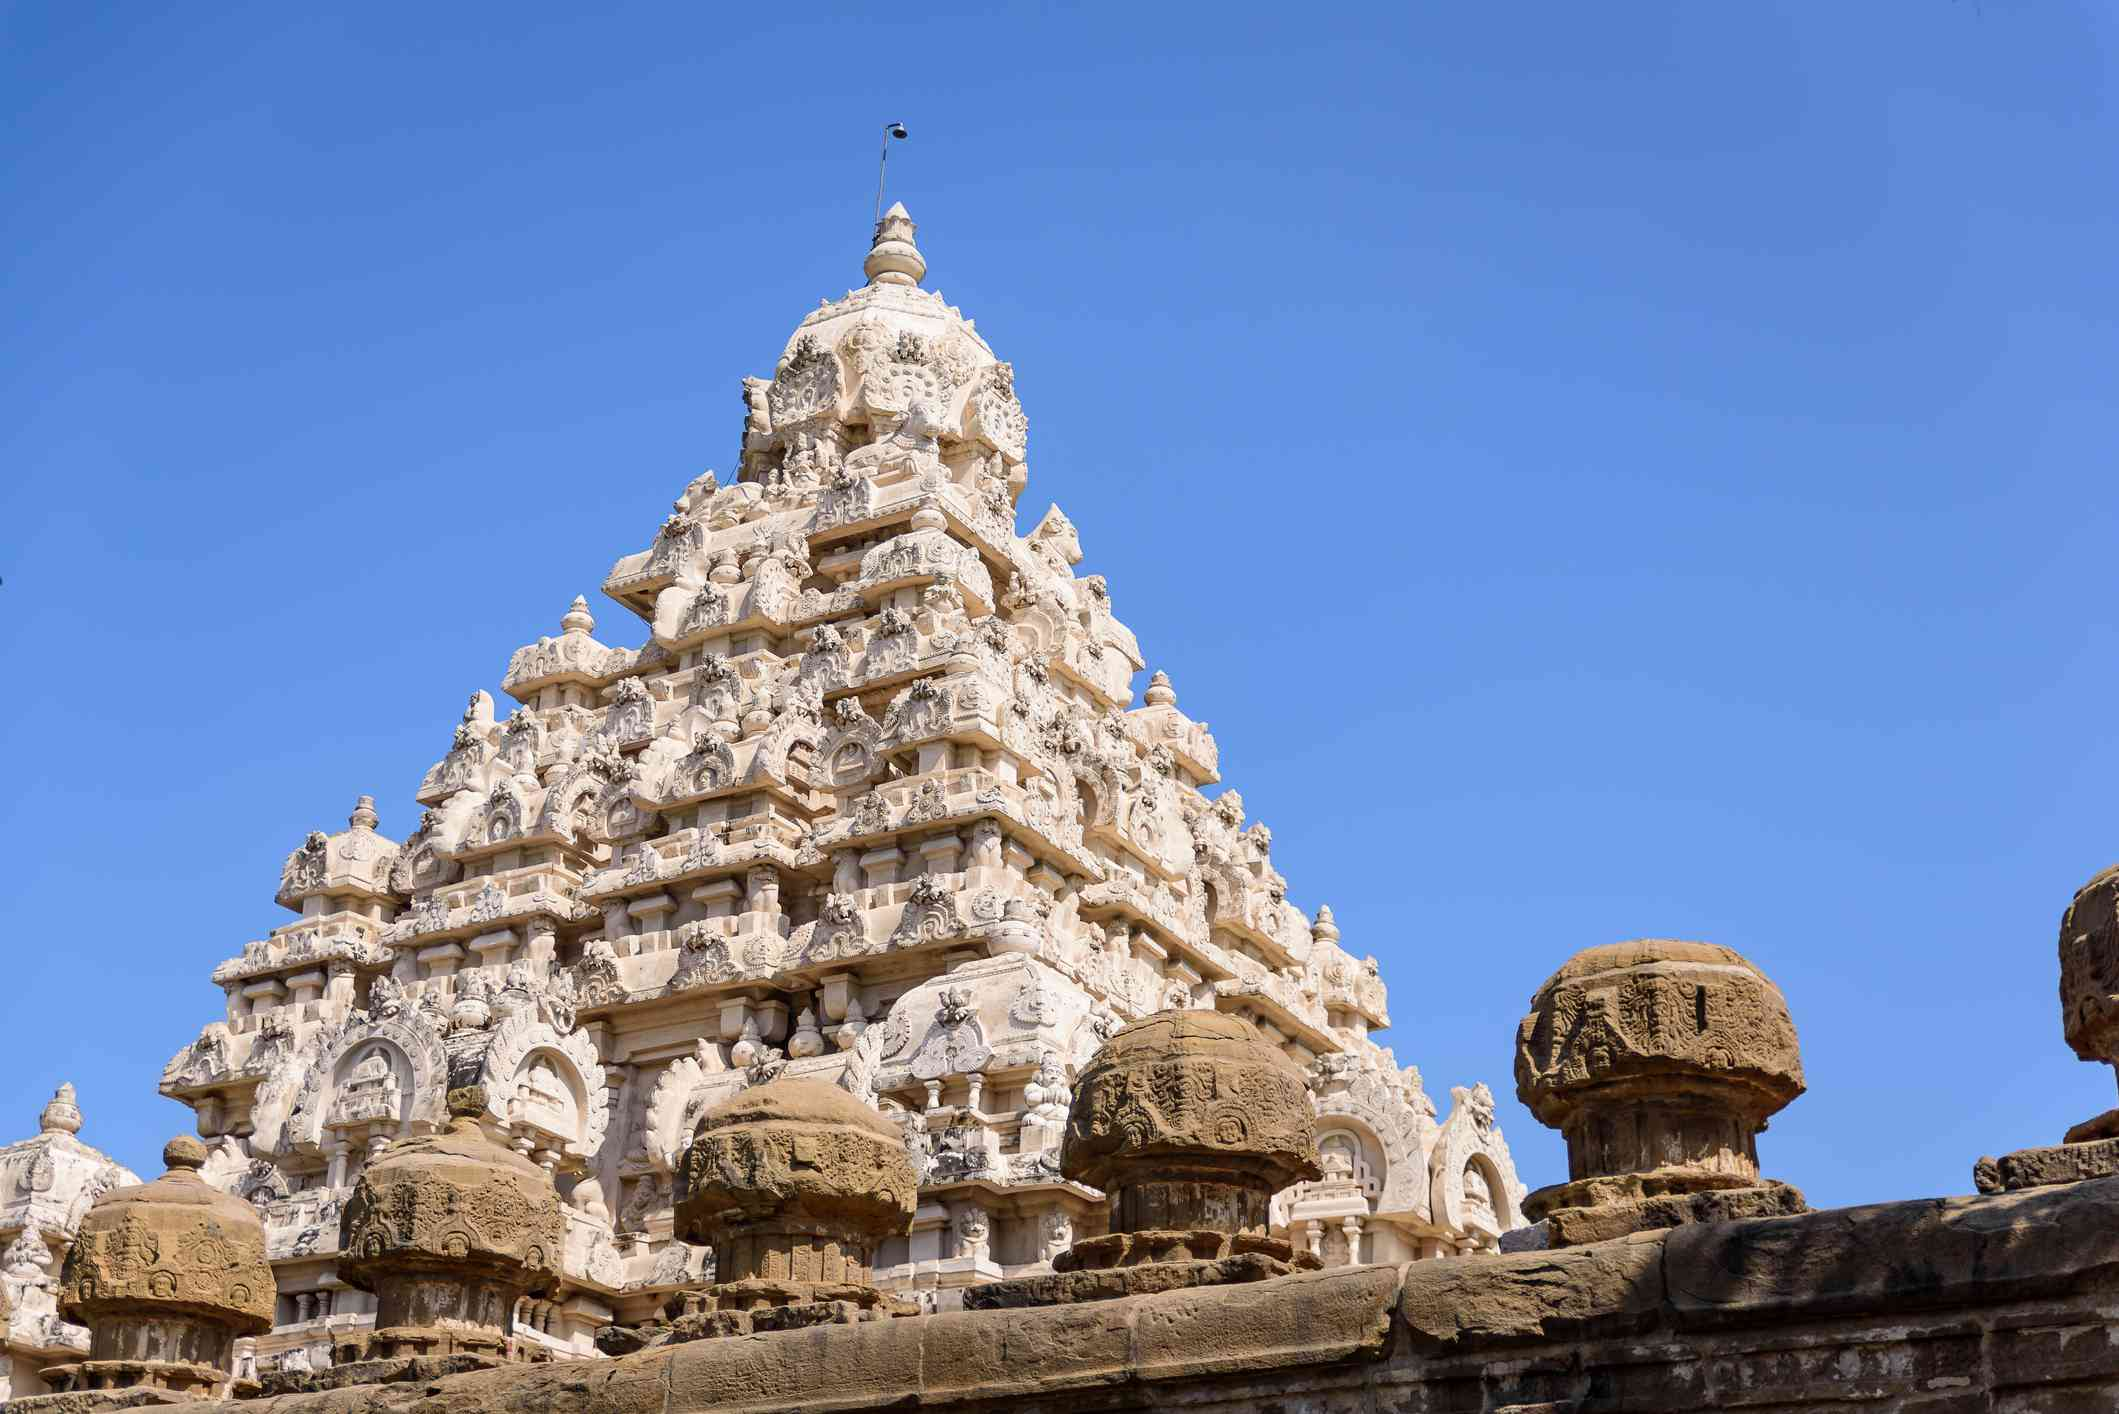 Low-angle view of a white Hindu temple (Shiva temple), India